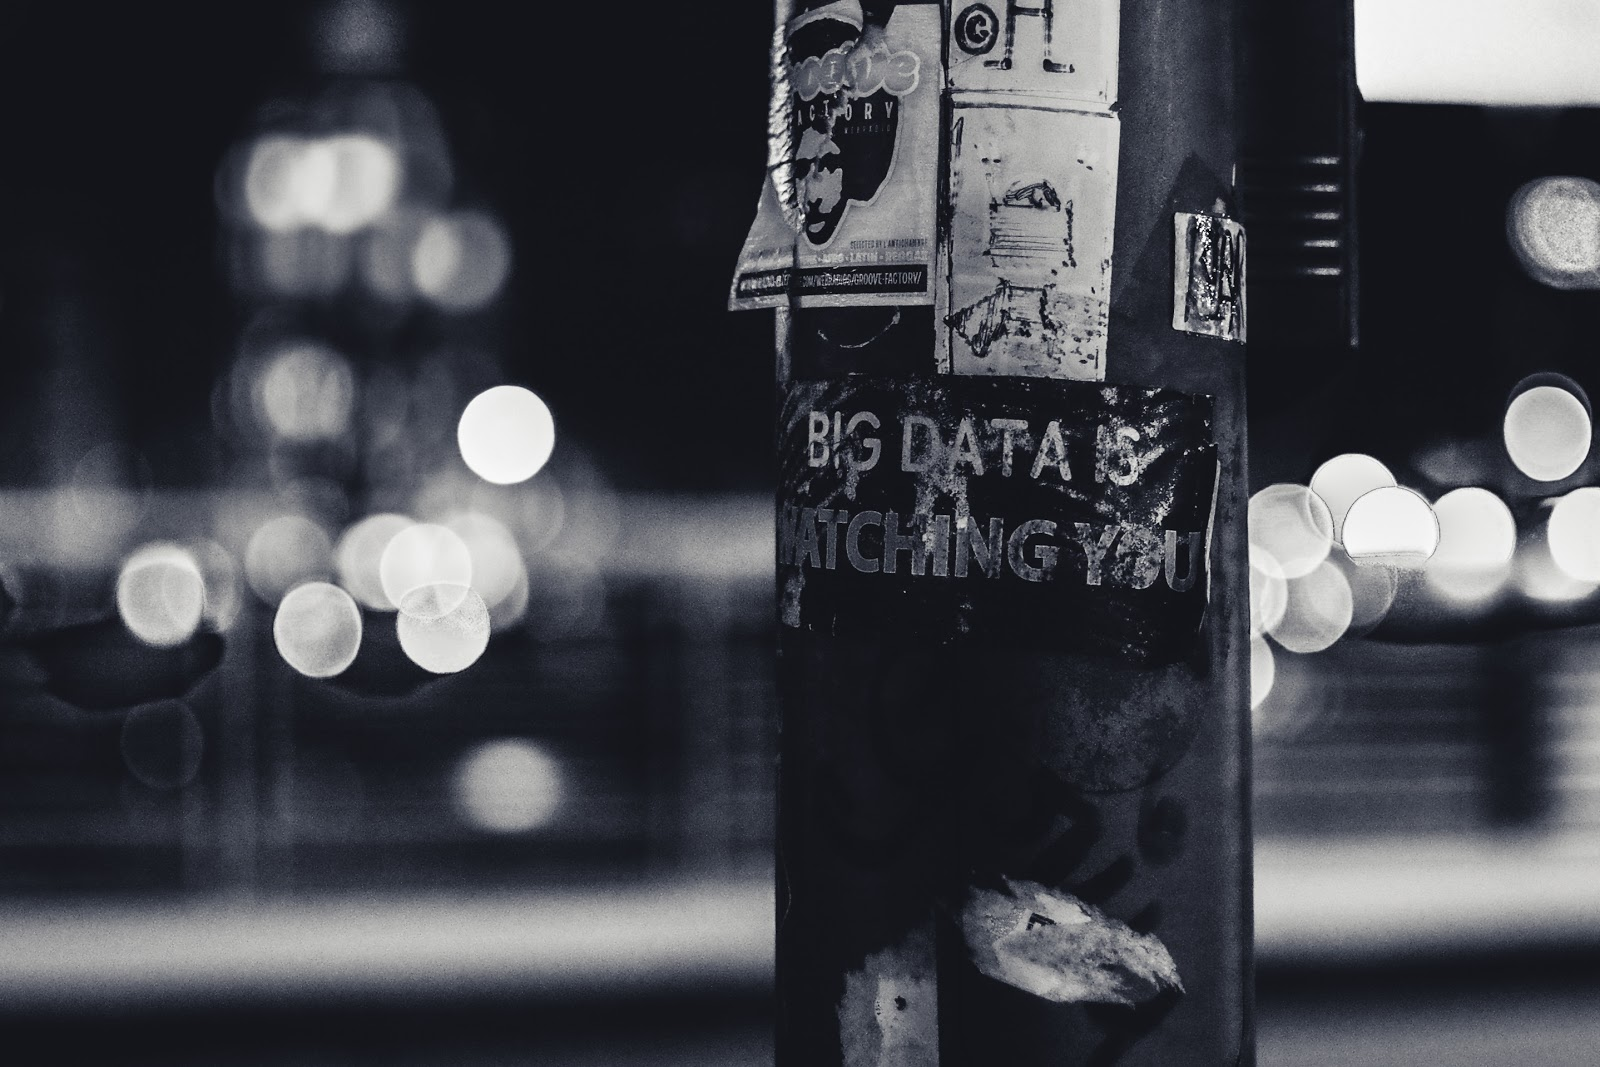 a black and white picture of posters pasted on a street lamp